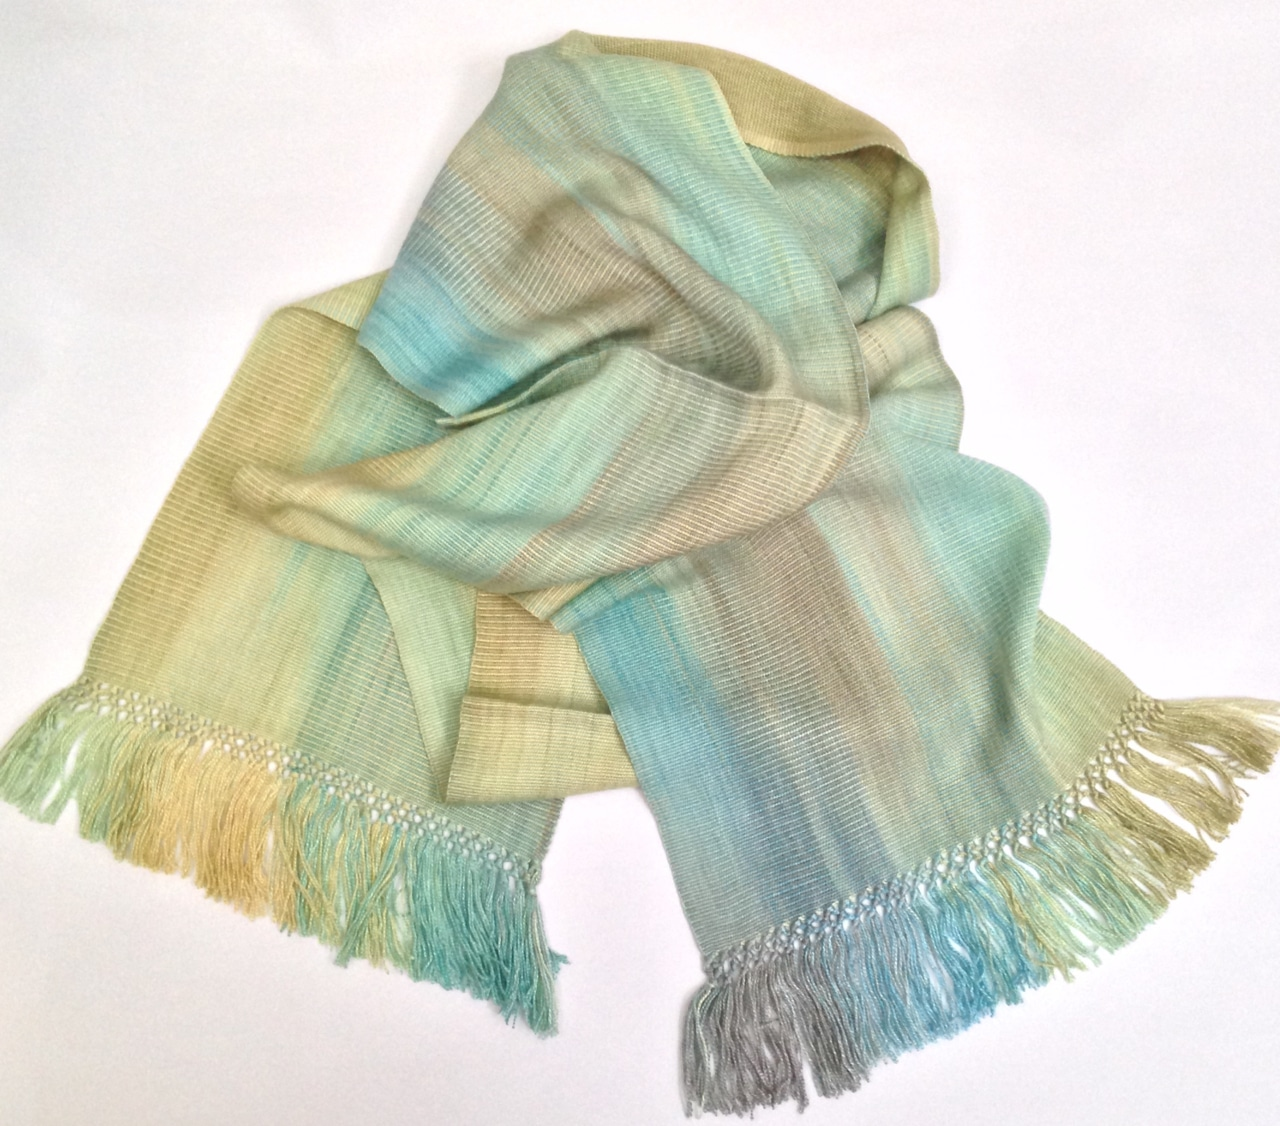 Pale Greens and Beige - Lightweight Bamboo Handwoven Scarf 8